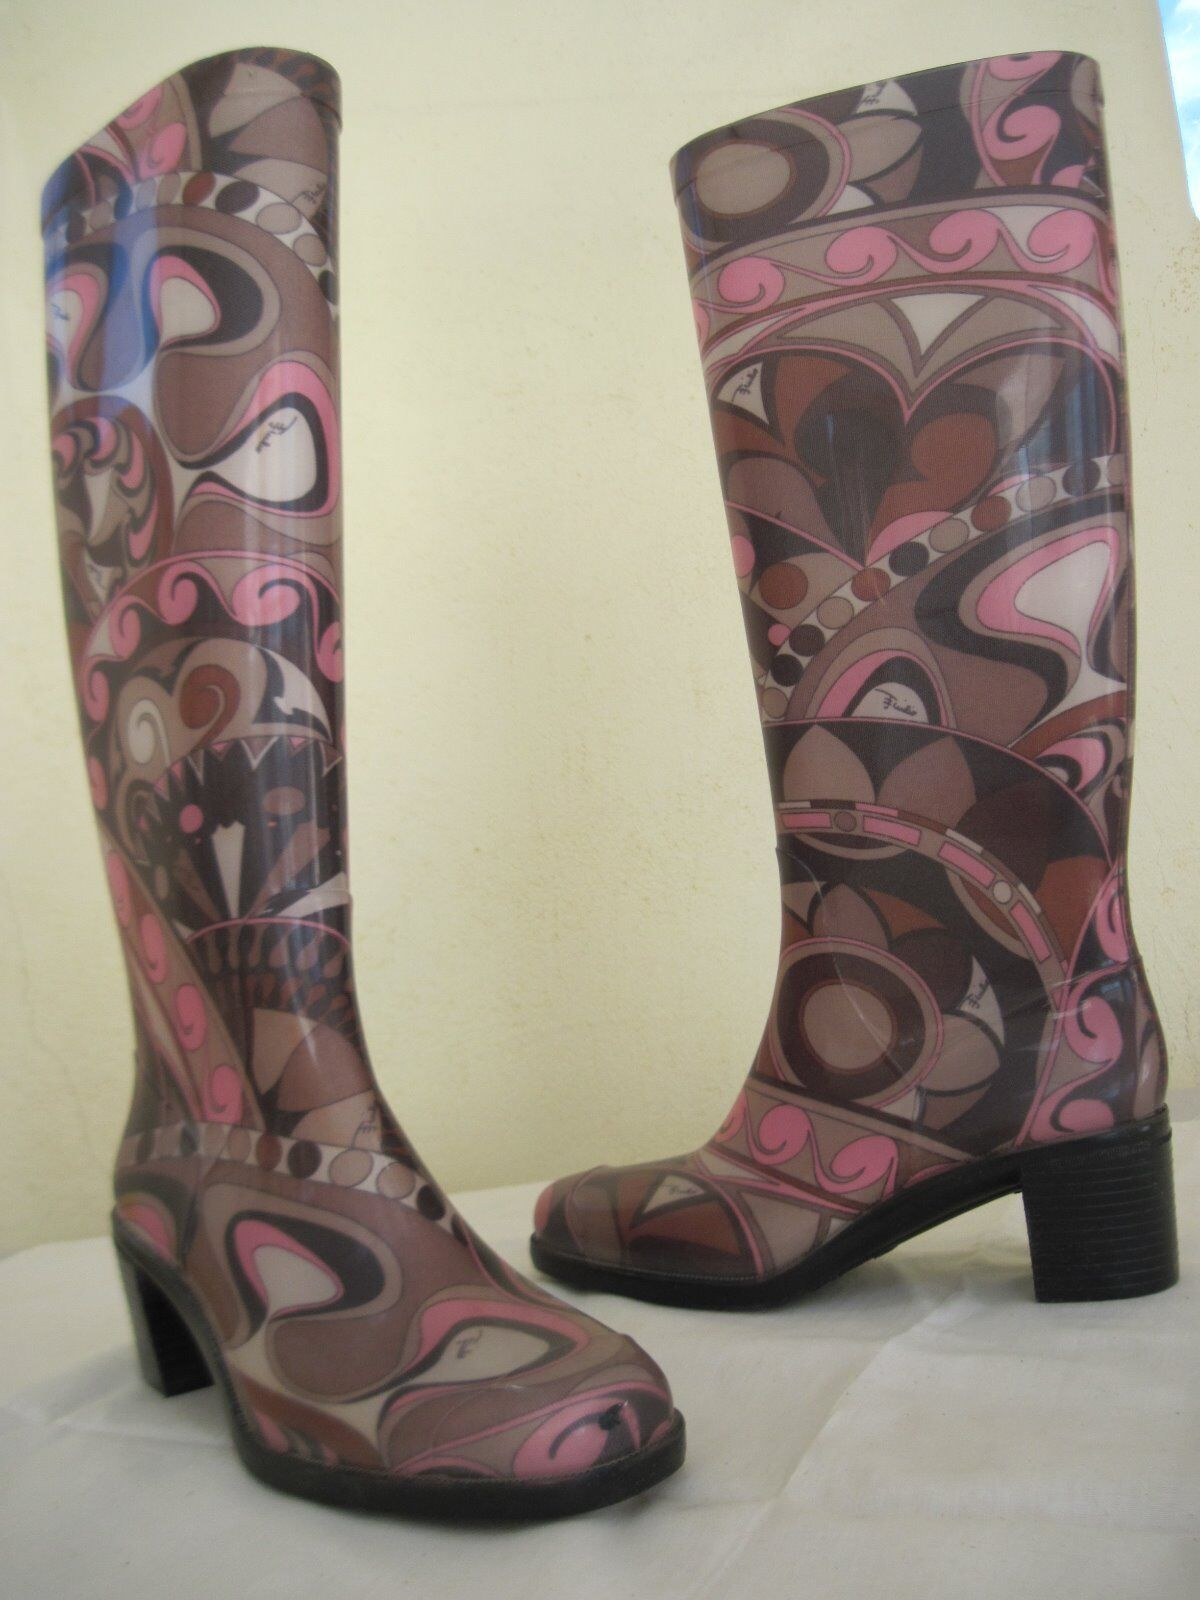 Women's Emilio Pucci Rubber Knee High Boots Size 36 (5.5M)    Worn once